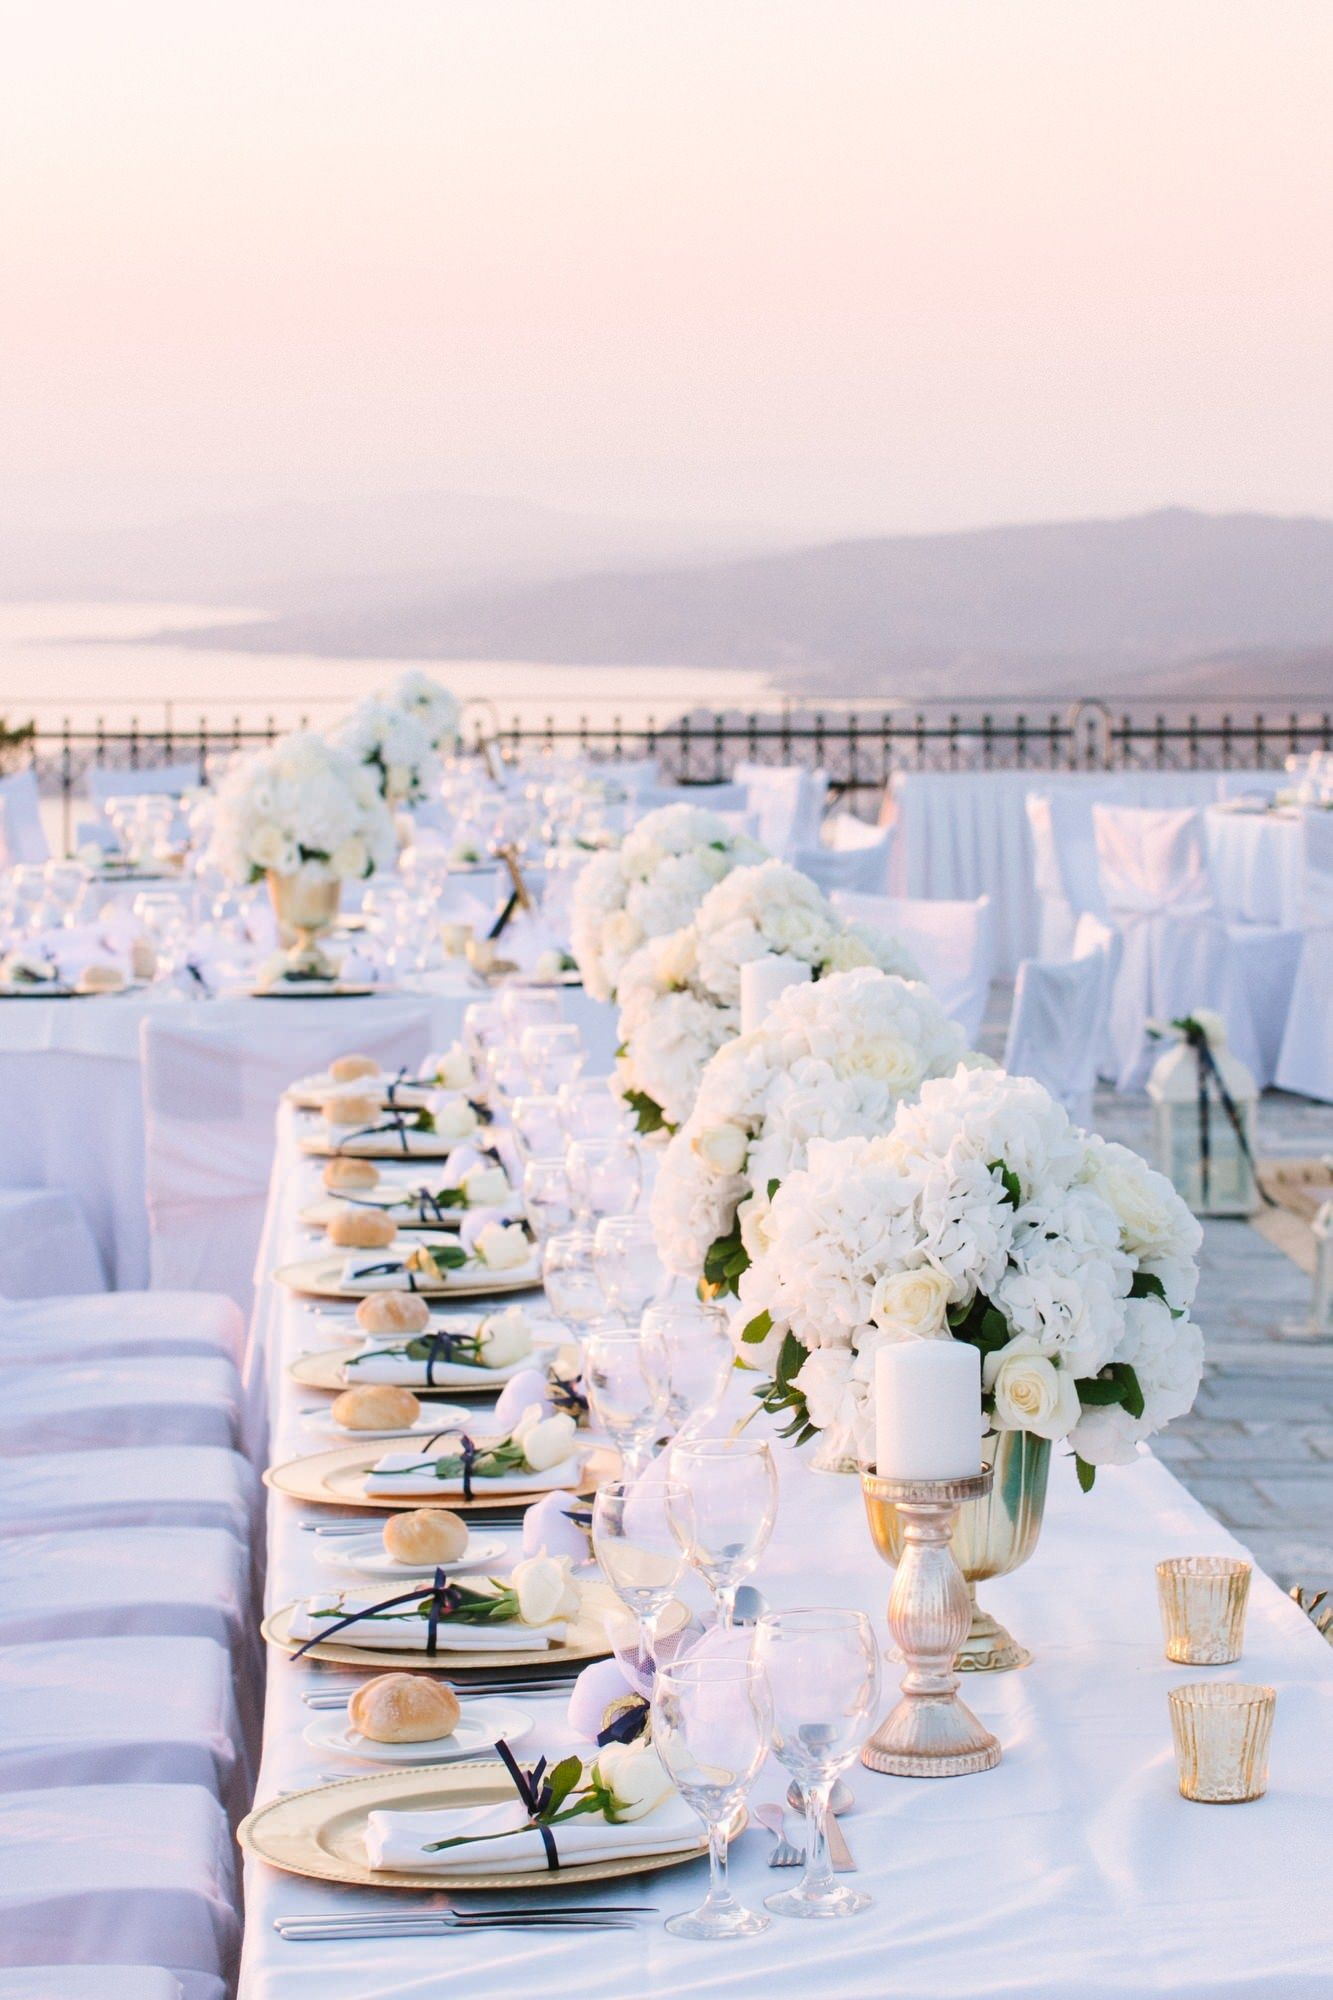 10 Reasons To Have A Destination Wedding Rooftop Wedding White